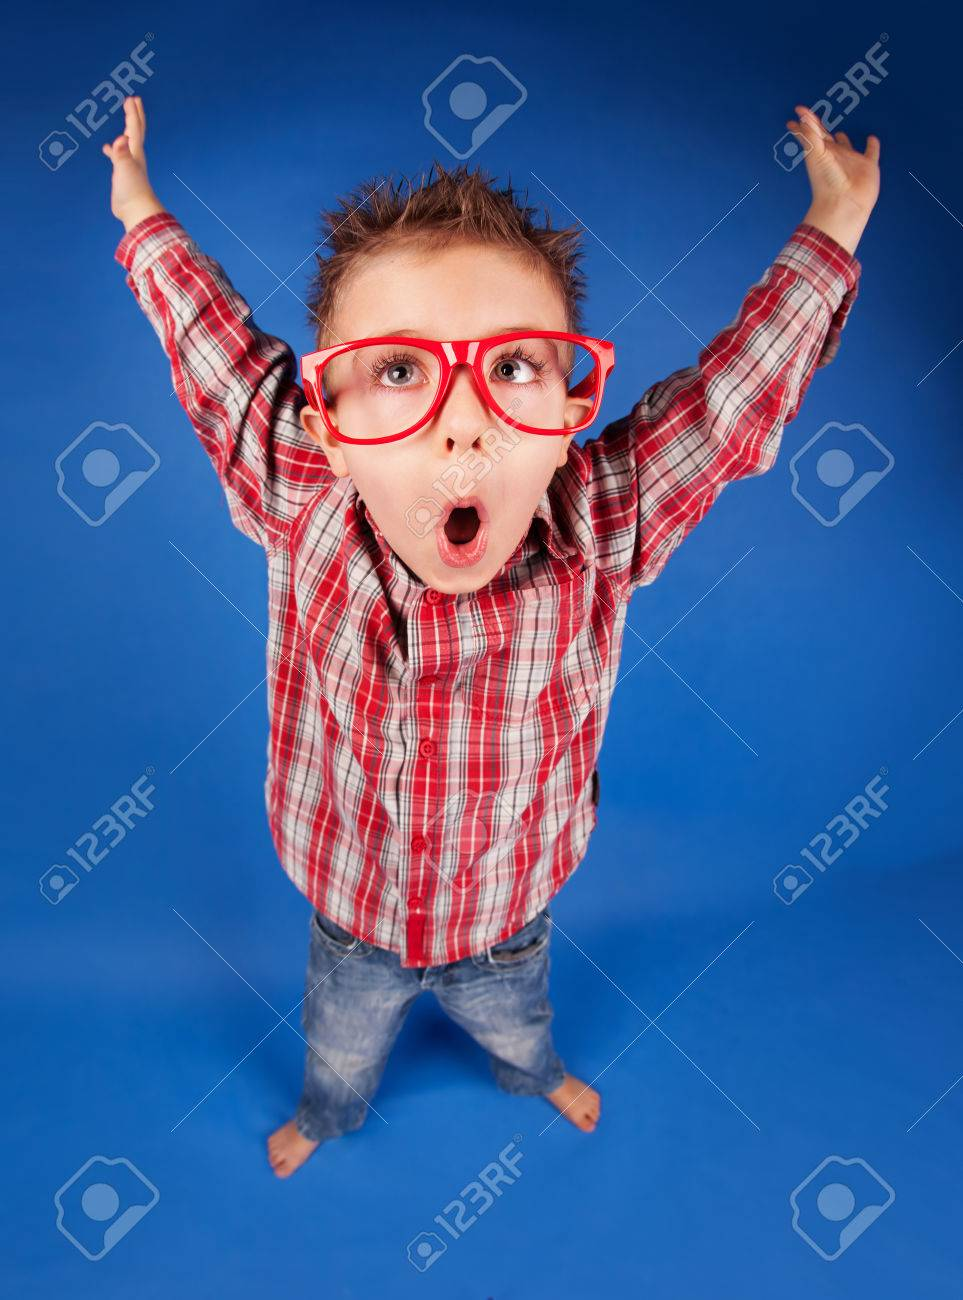 7f9942ce3792 Active funny five years old boy with expressive face, jumping, playing  concept Stock Photo